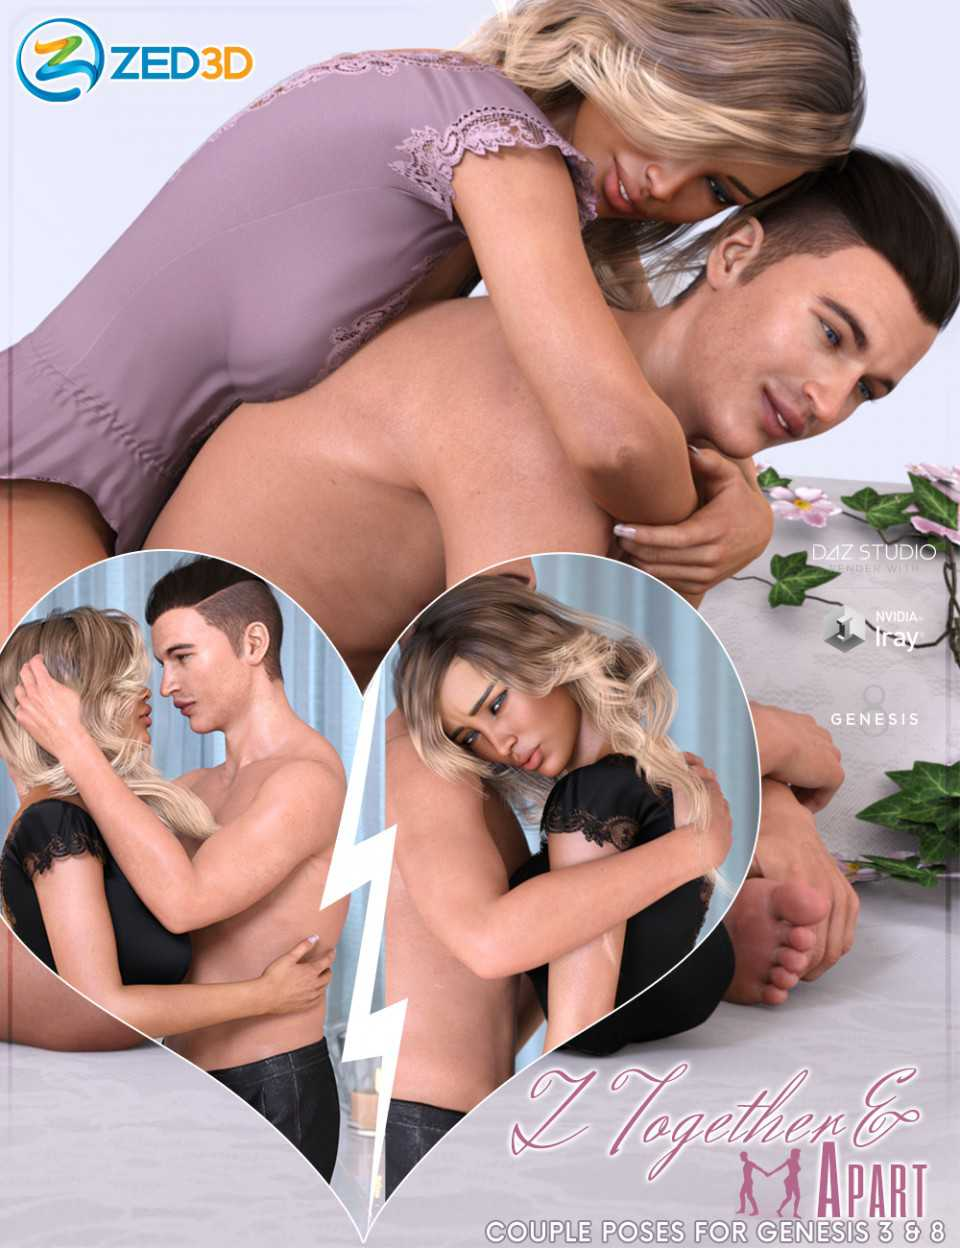 Z Together and Apart Couple Poses for Genesis 3 and 8